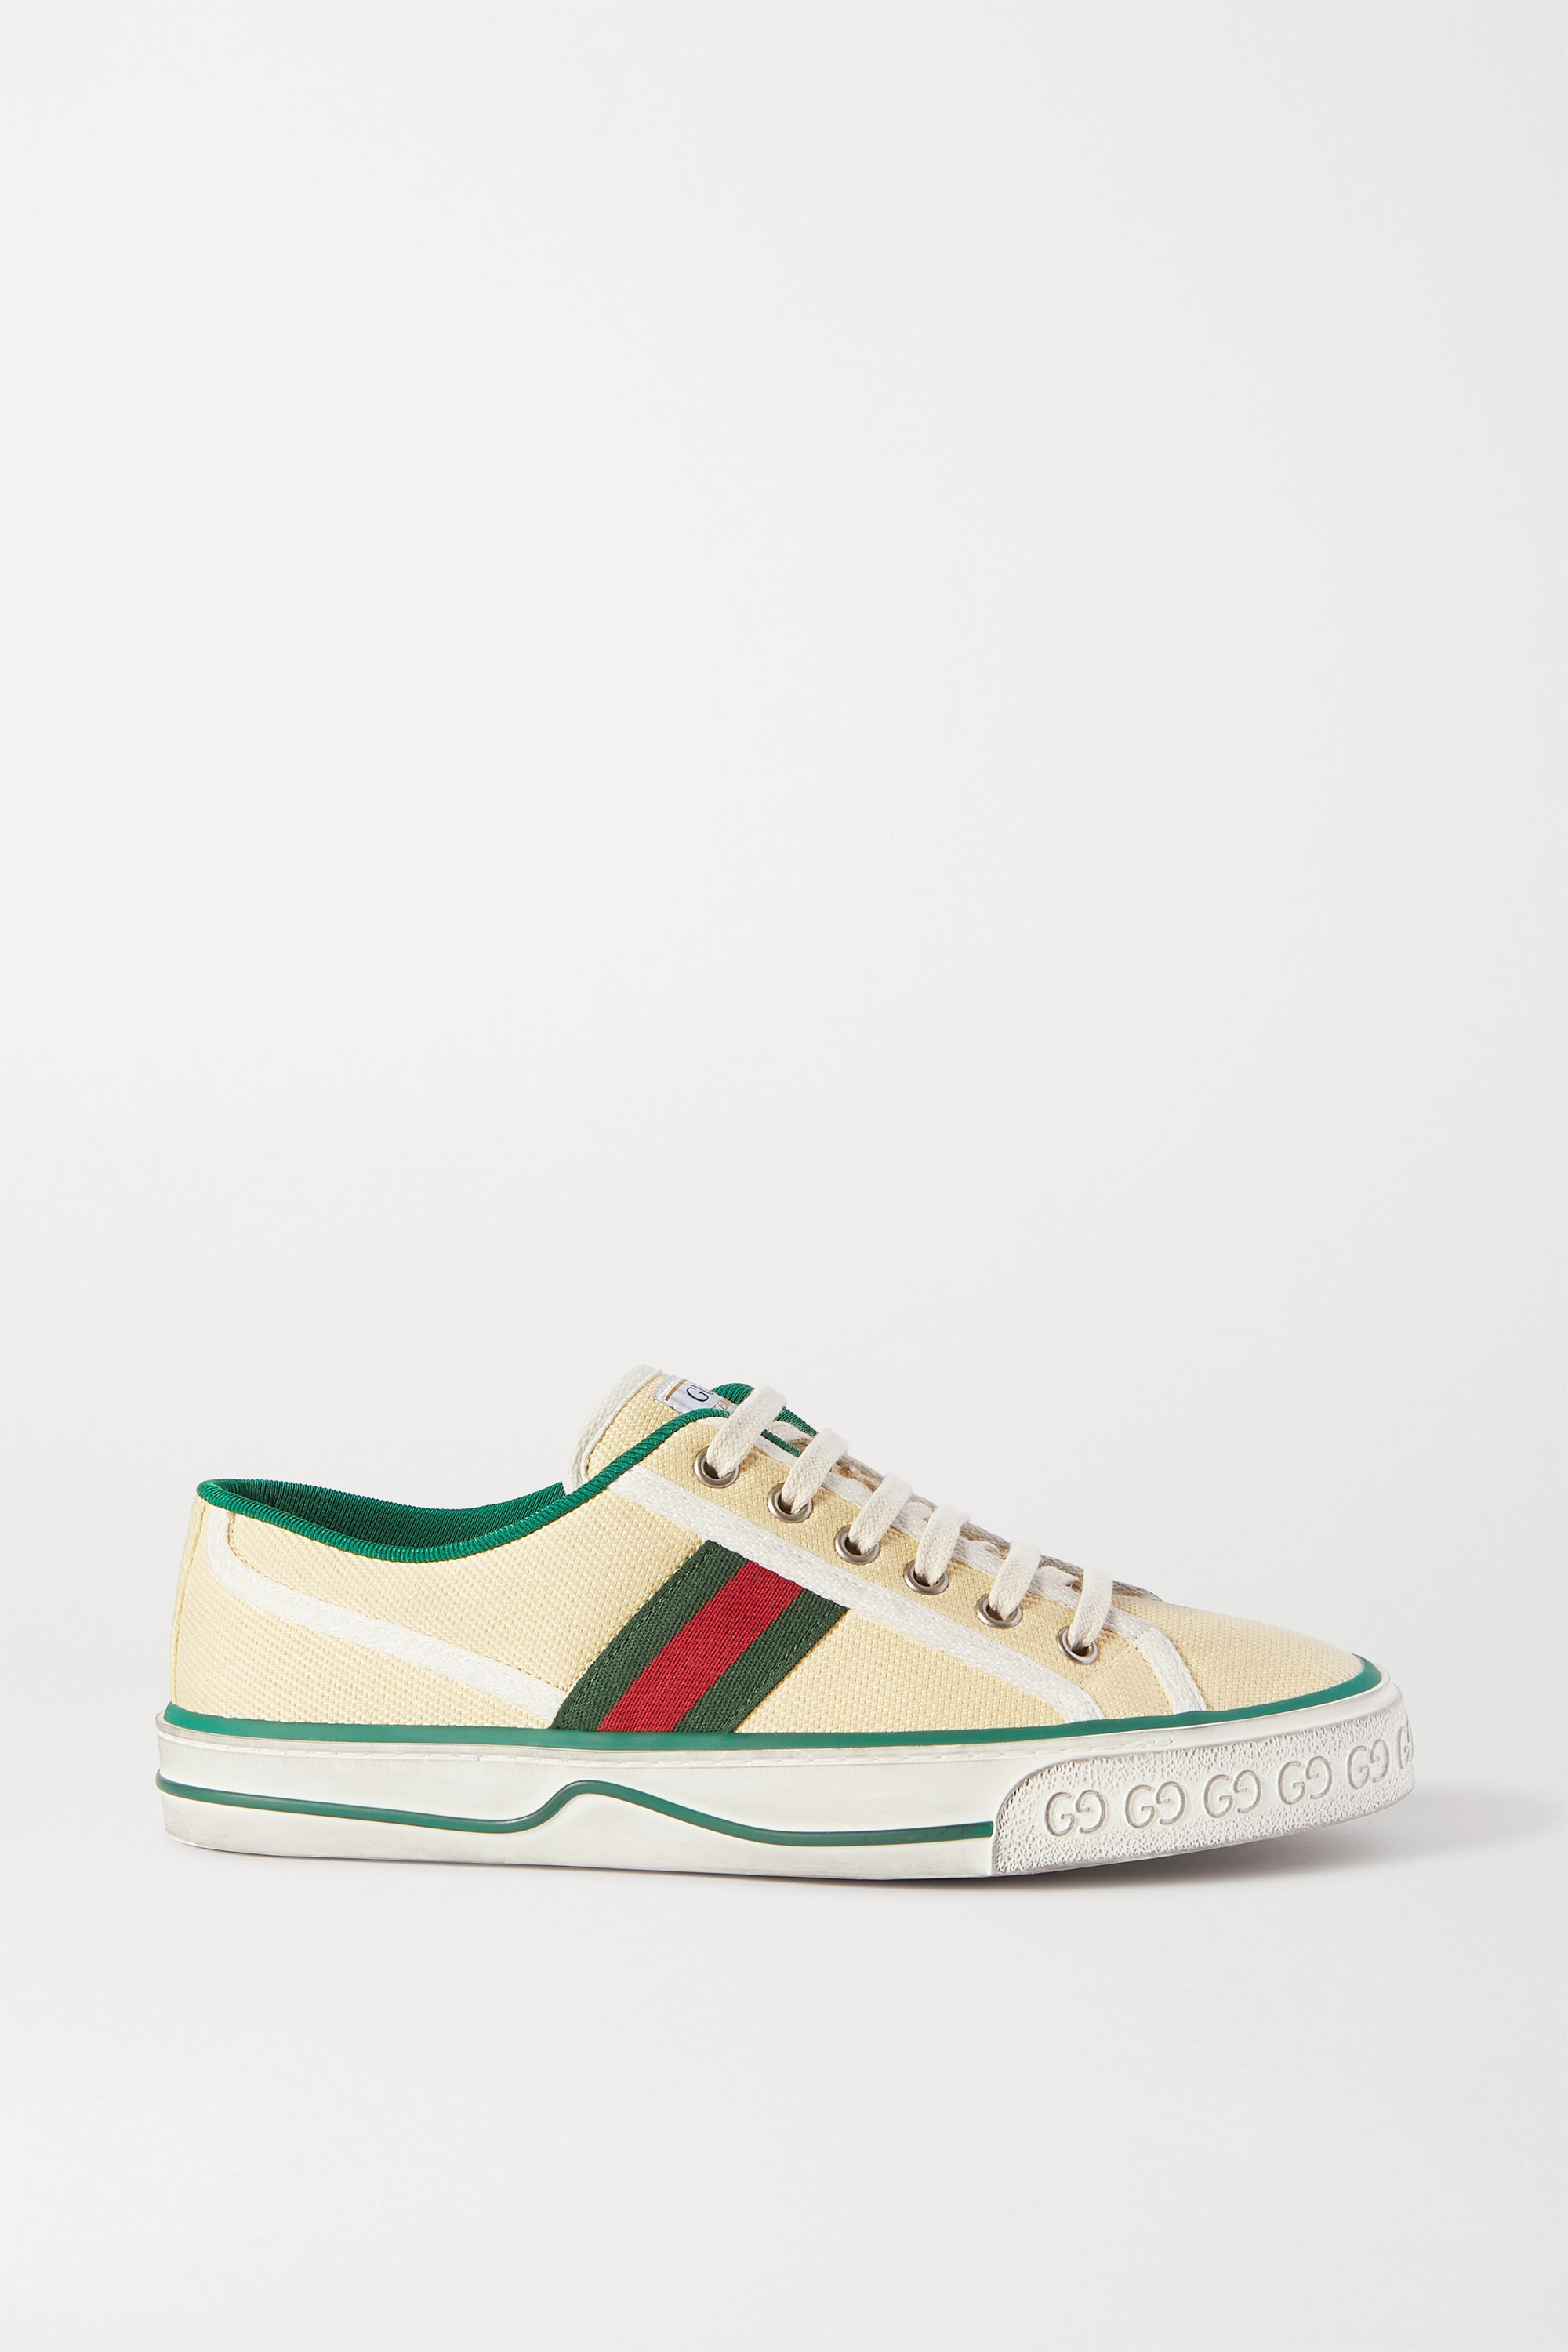 Gucci Webbing-trimmed canvas sneakers